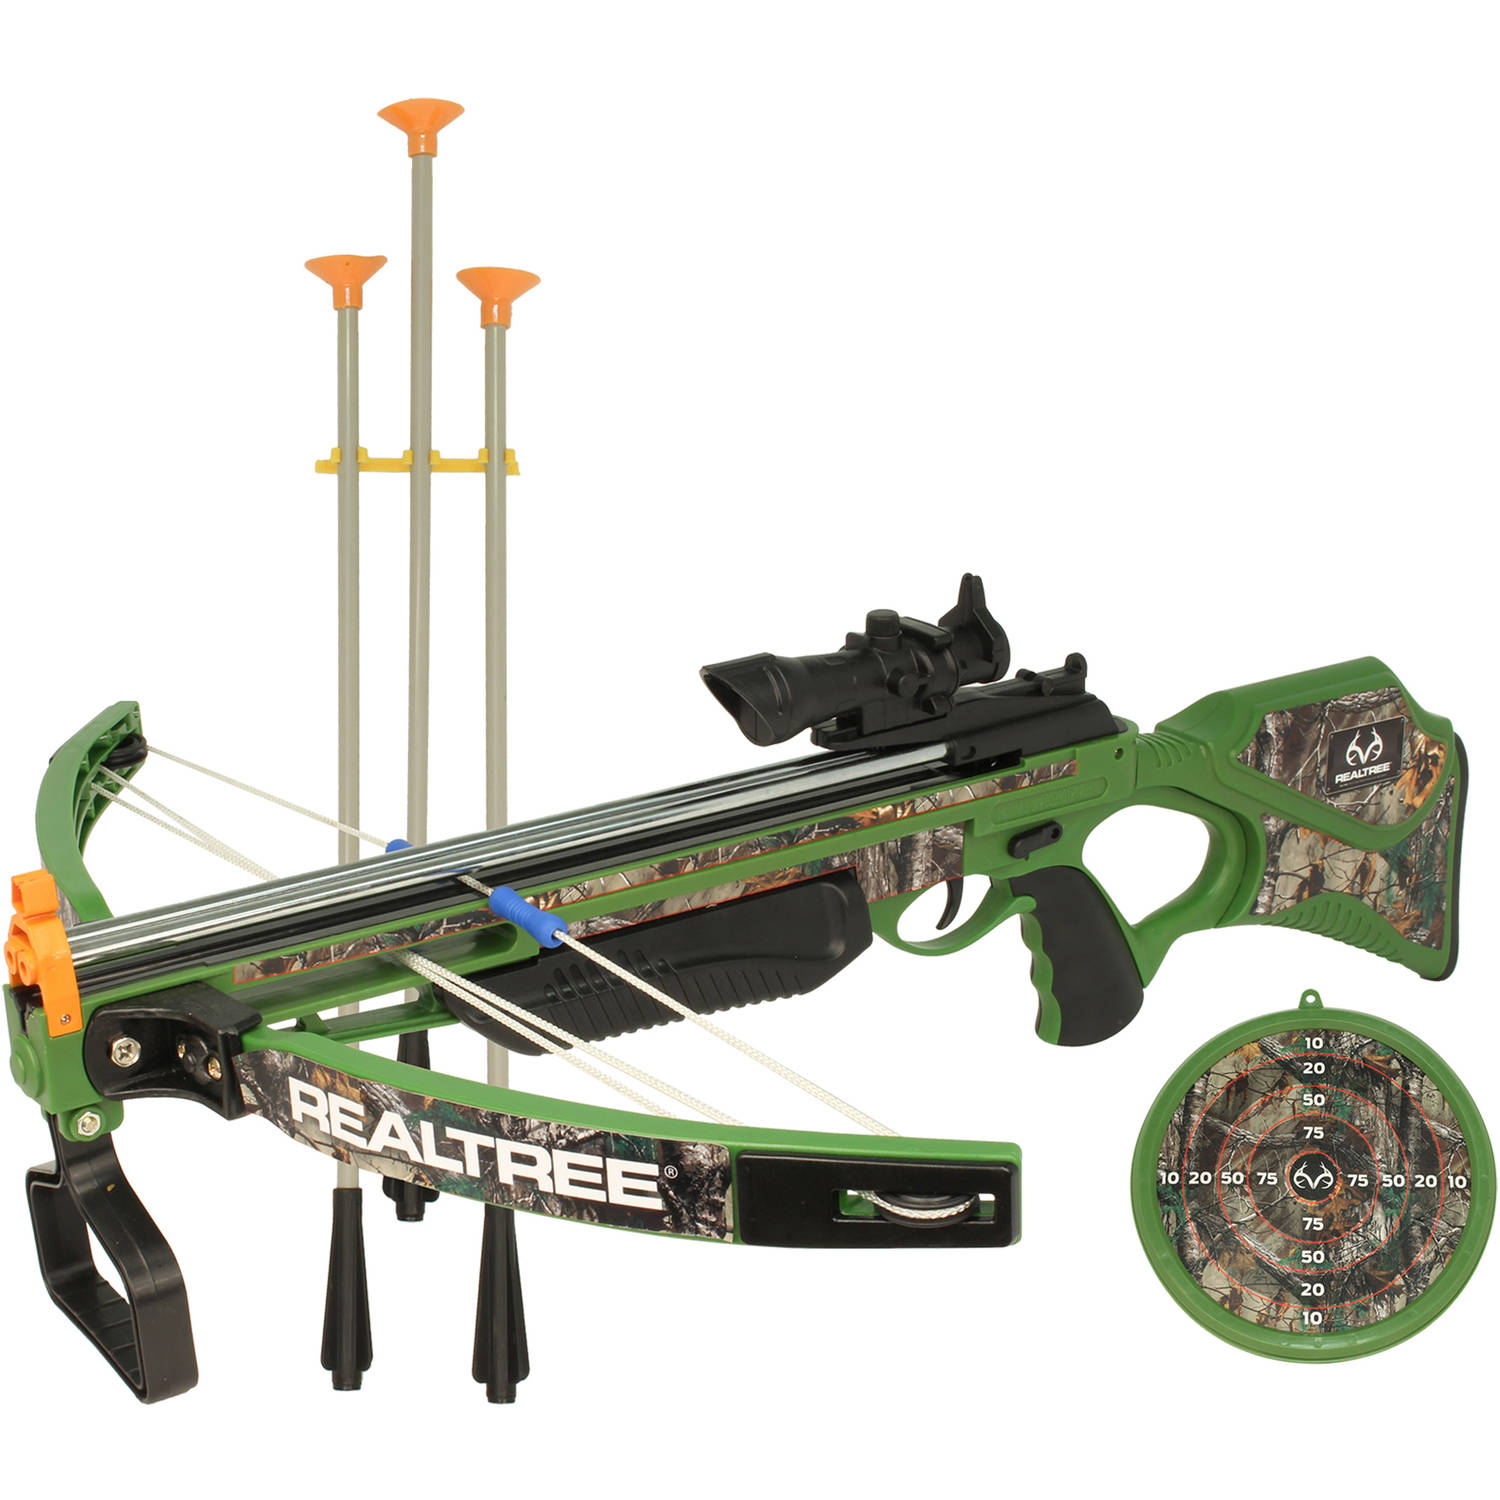 "NKOK RealTree 26"" Junior Compound Crossbow Set thumbnail"